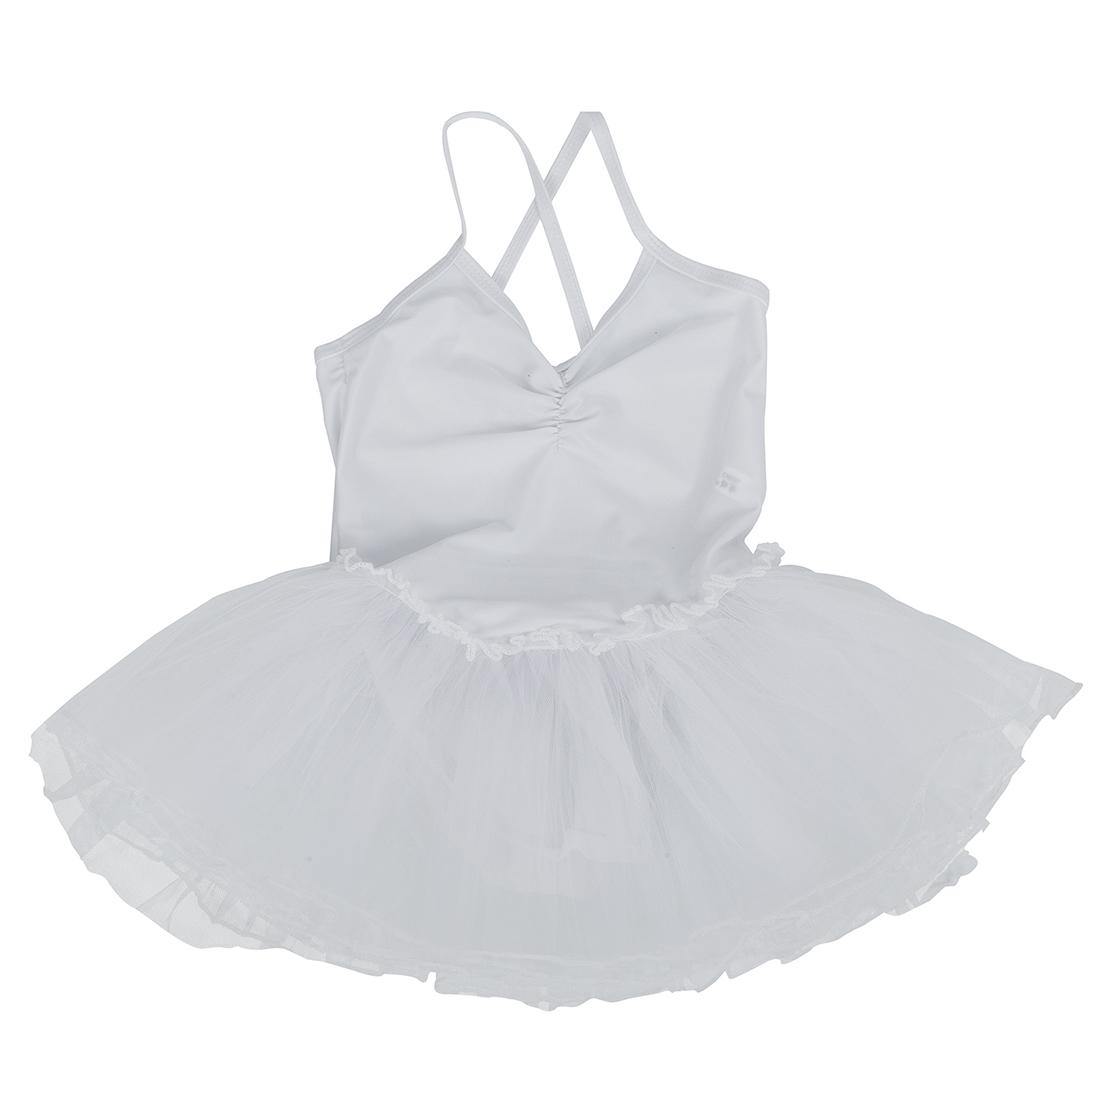 ABWE Best Sale Girl Ballet Dance Dress Gymnastic Leotard Straps Tutu 3-4 Yrs abwe 4x a